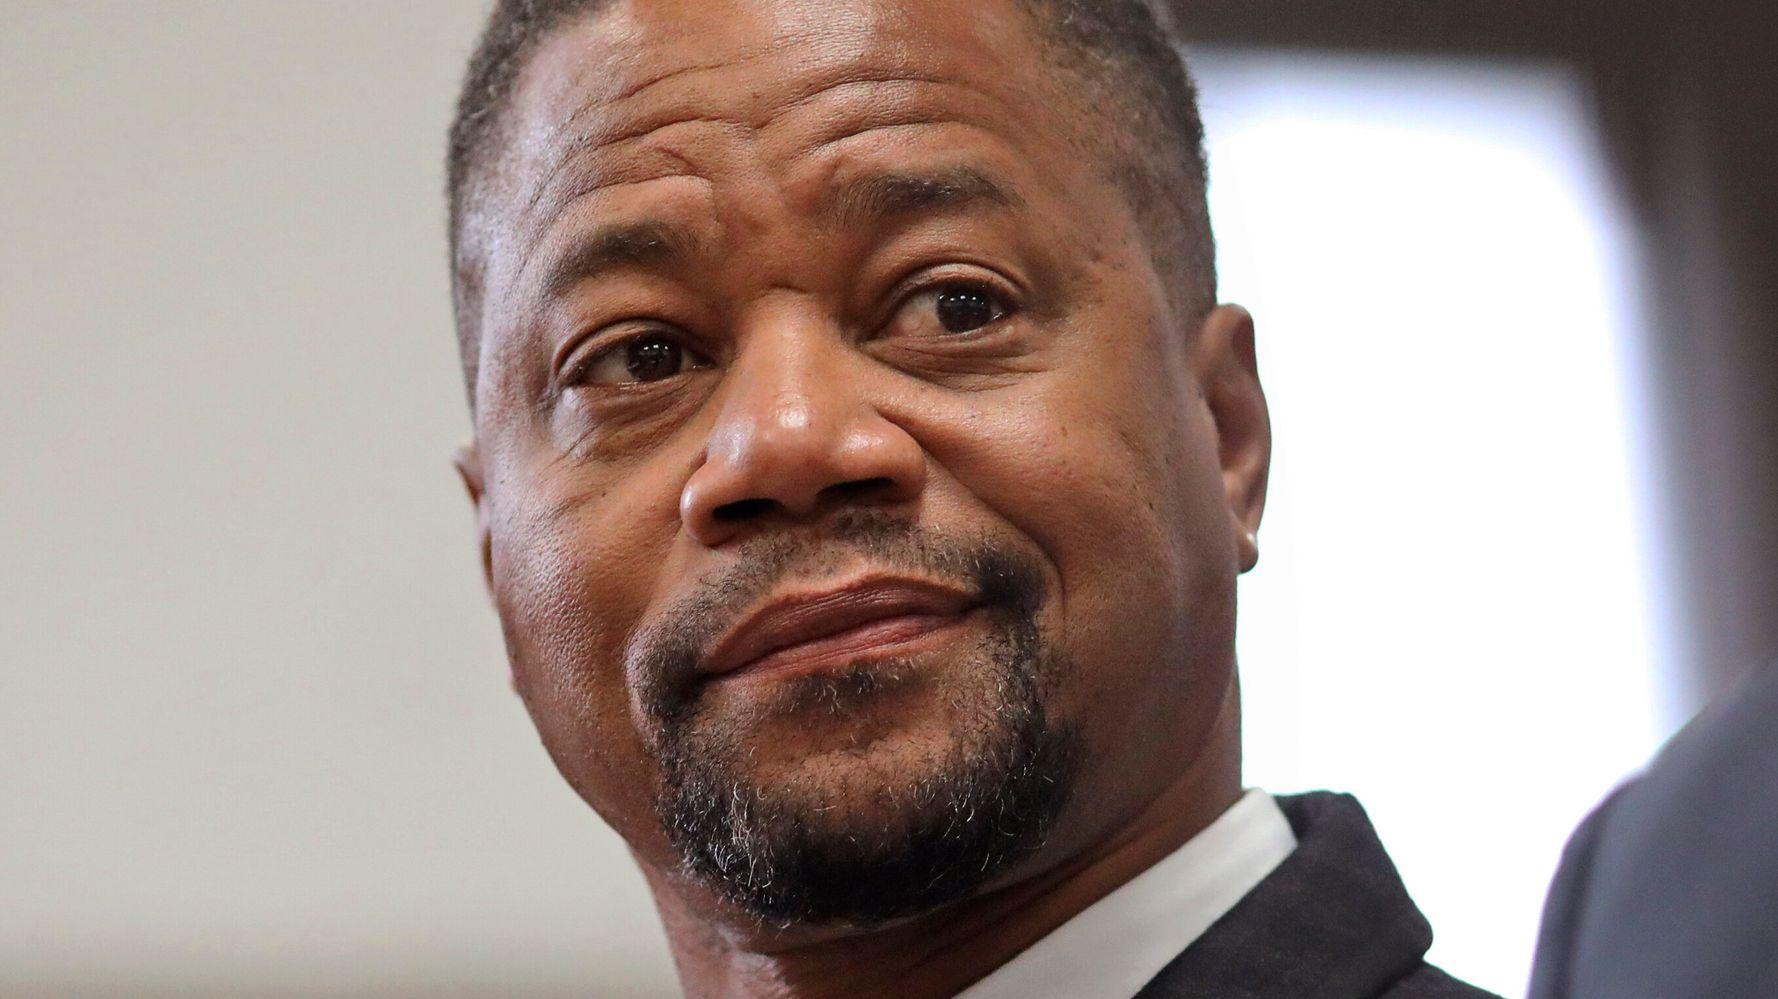 Westlake Legal Group 5d9f5163210000c307343884 Cuba Gooding Jr. Groping Trial Delayed After Indictment On New Charge